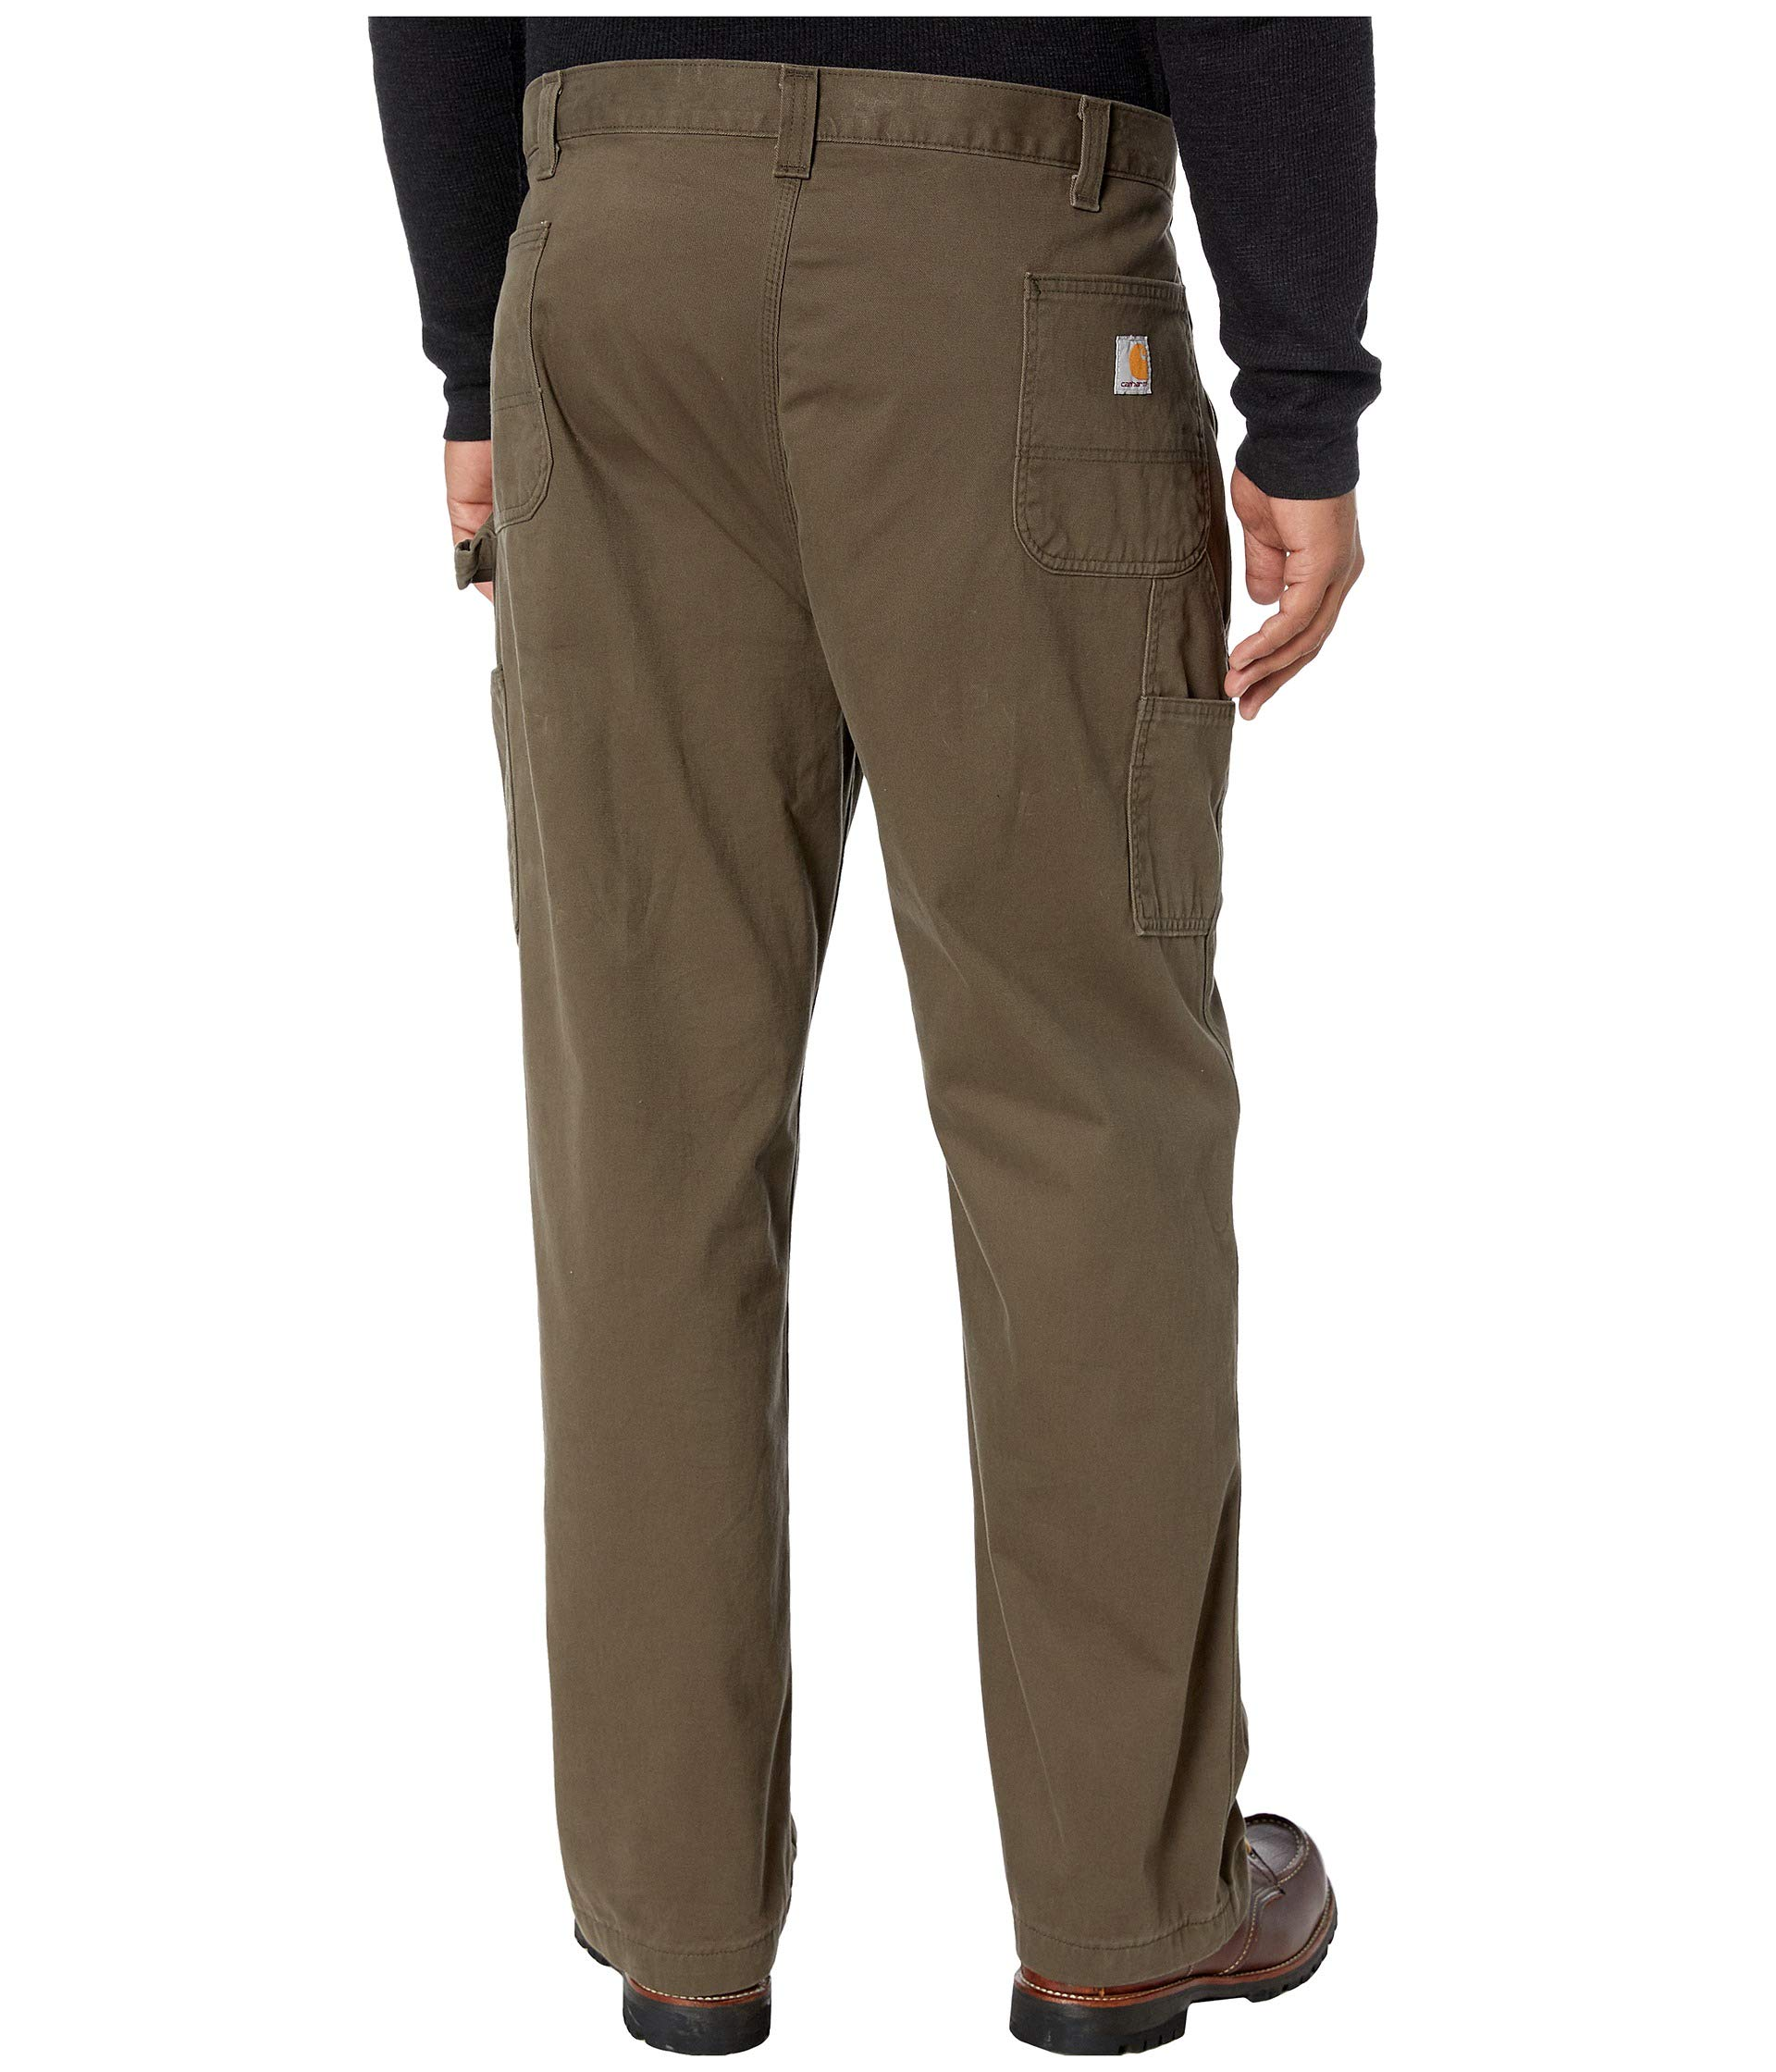 Carhartt Men/'s Relaxed-Fit Washed Twill Dungaree Pant